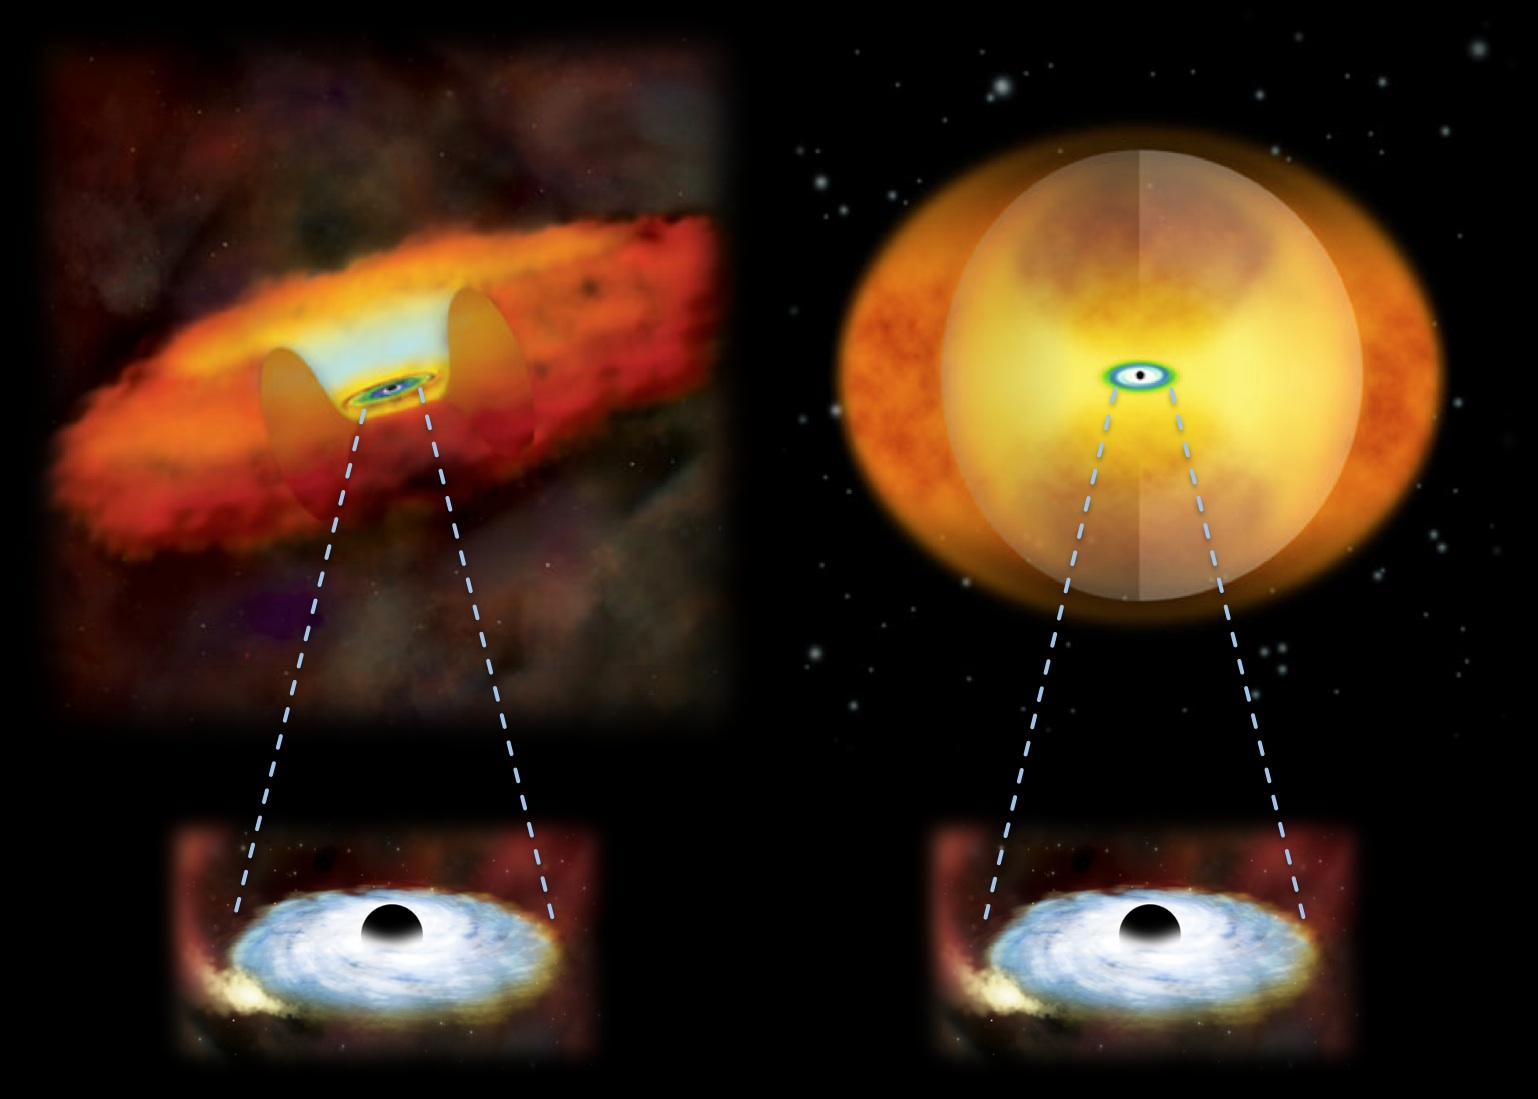 Giant black holes revealed in the nuclei of merging galaxies